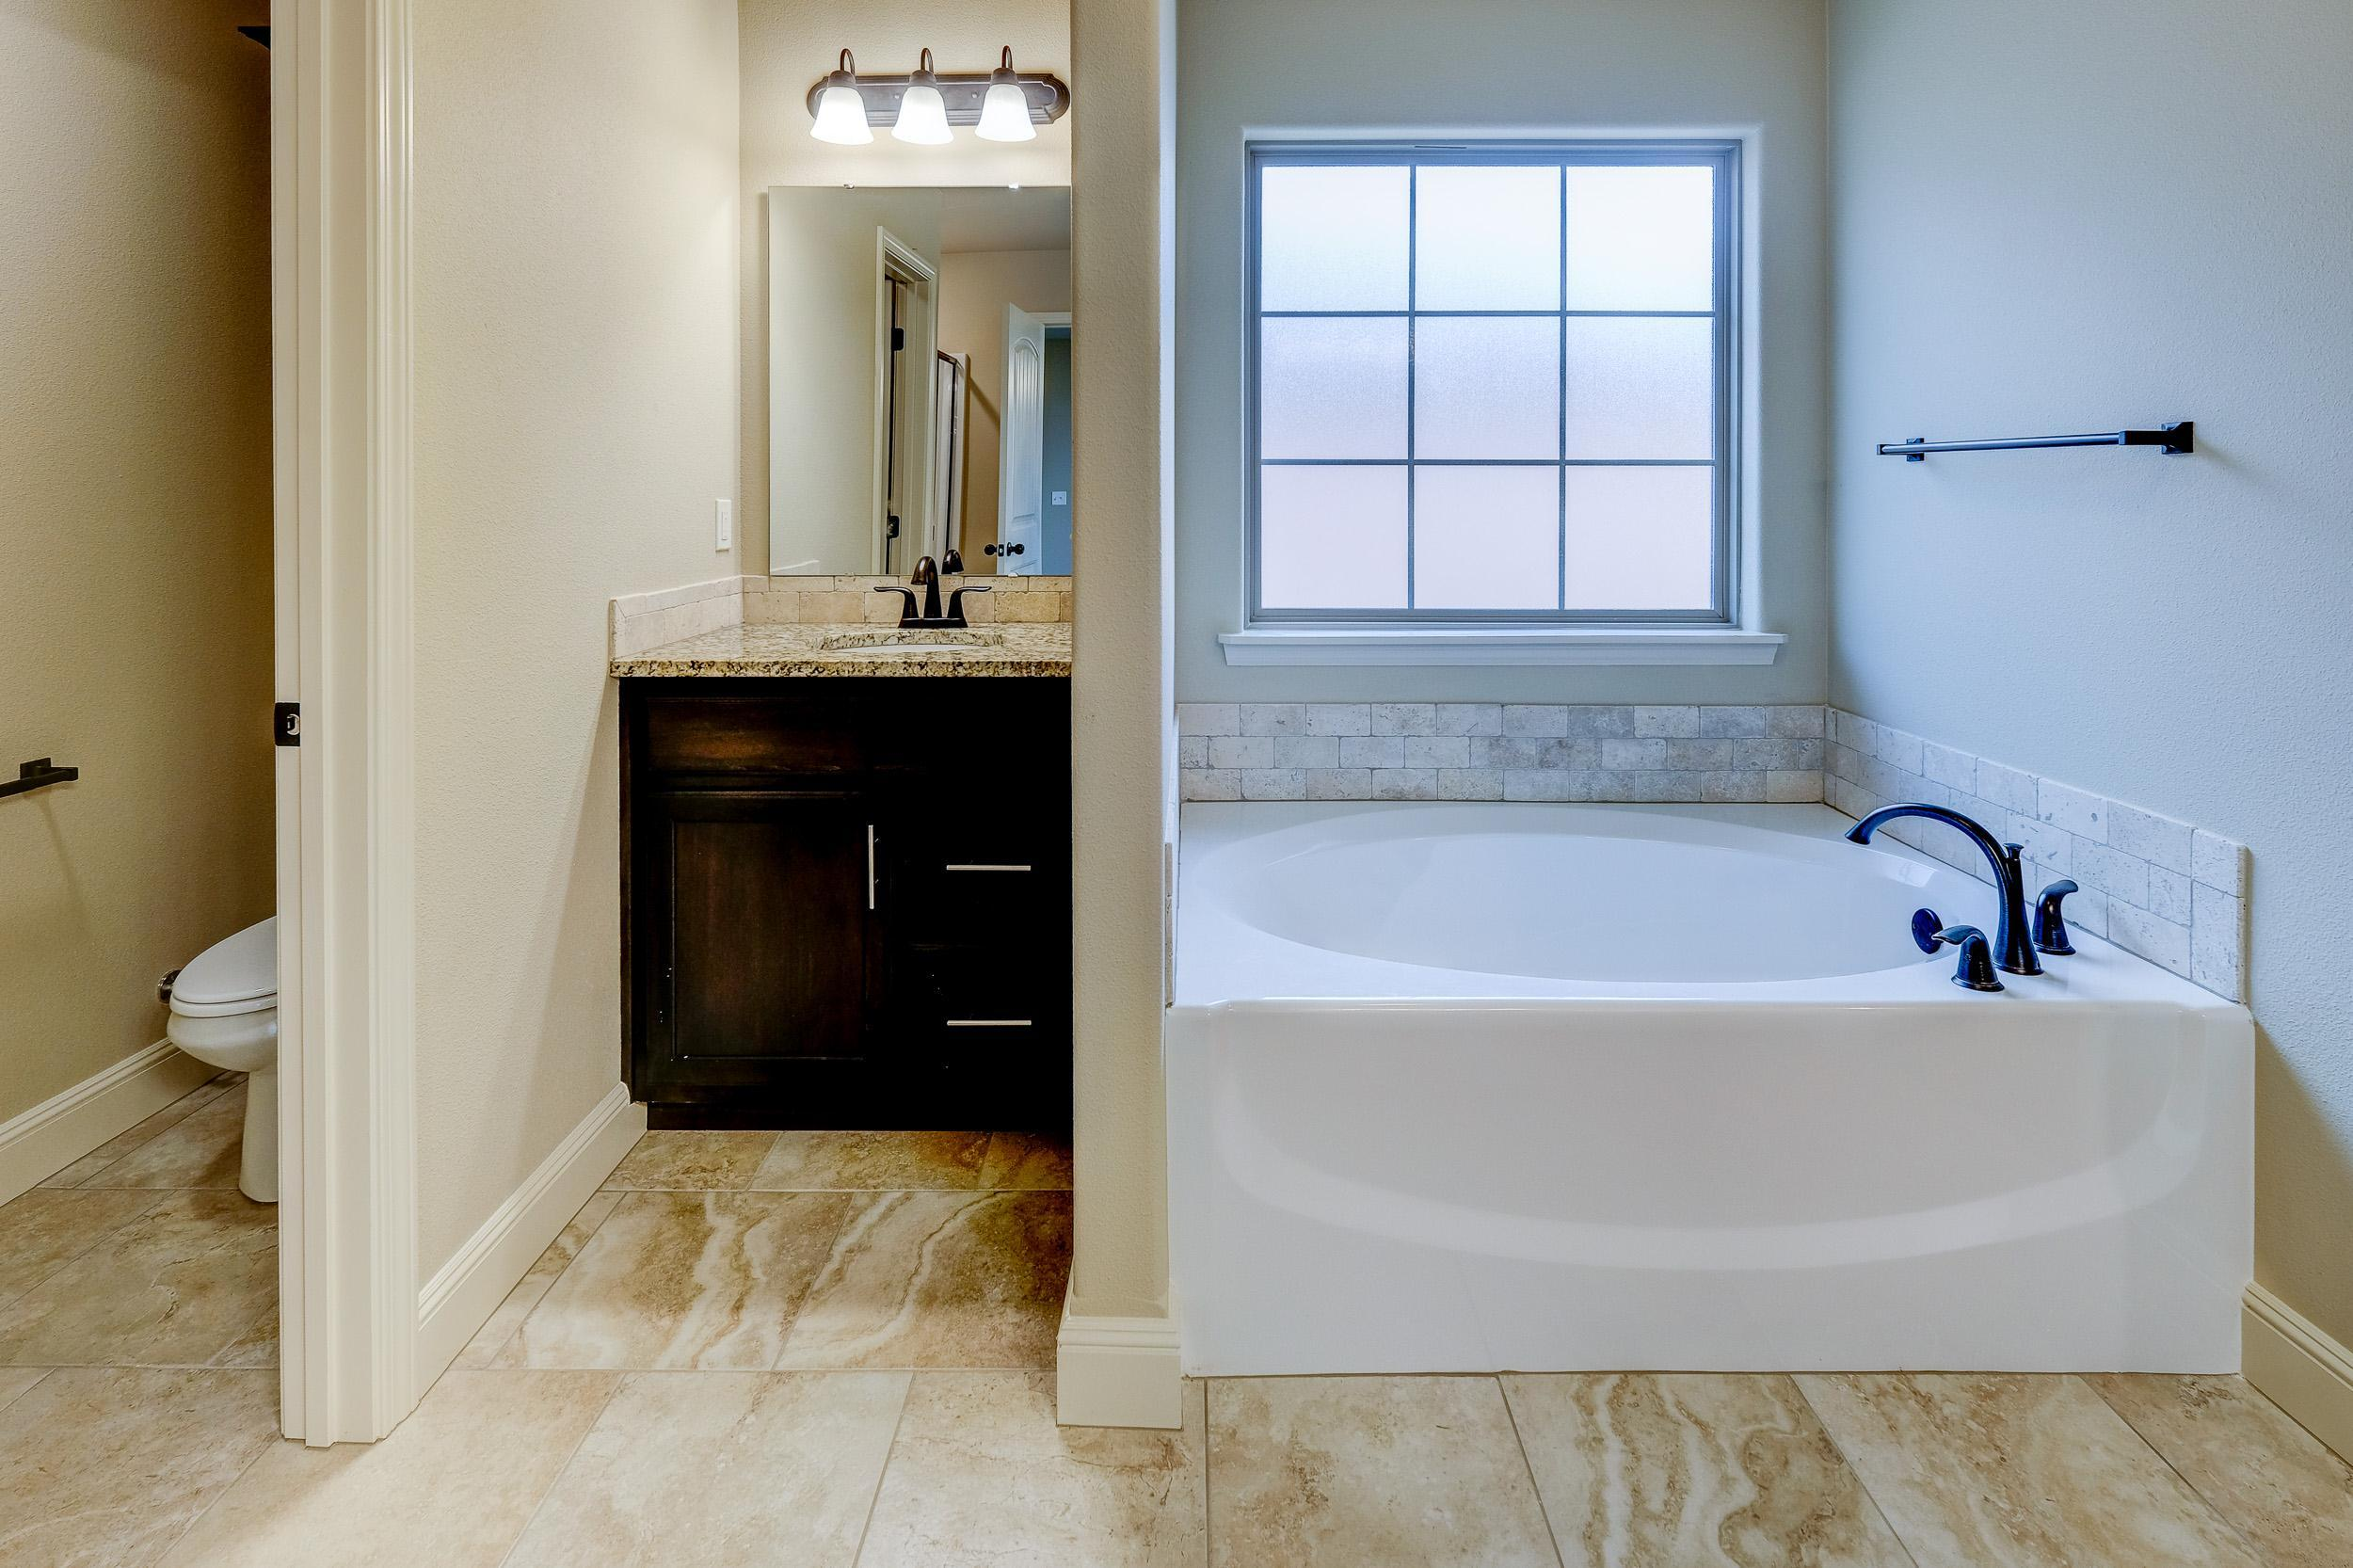 Bathroom featured in the 1650KI Series By Schuber Mitchell Homes in Joplin, MO